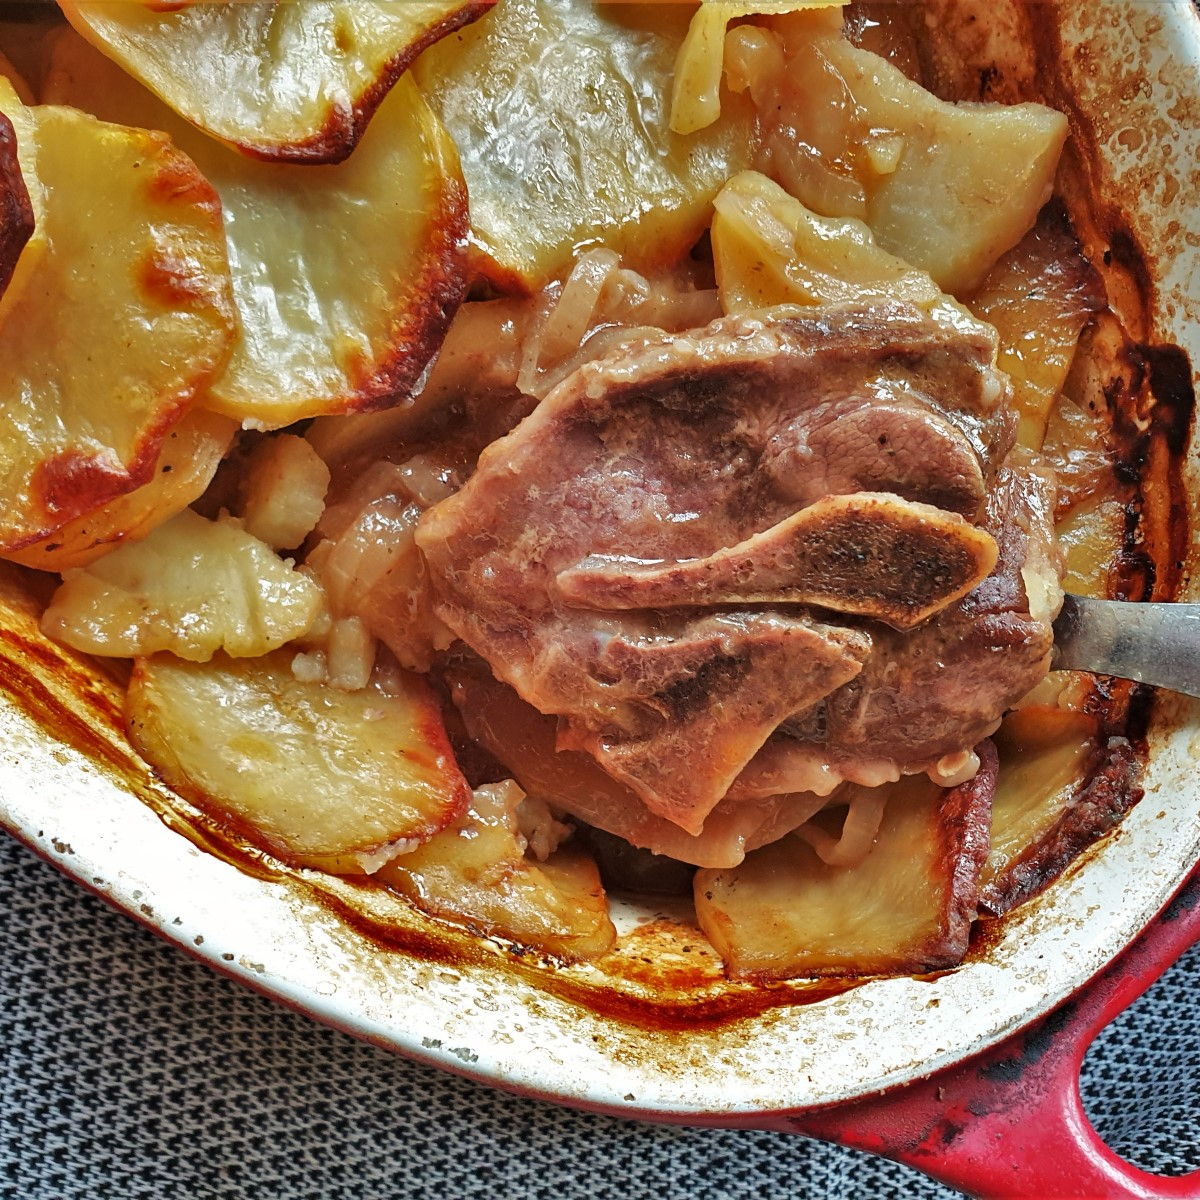 Lancashire hotpot showing a spoonful of lamb from under the potatoes.